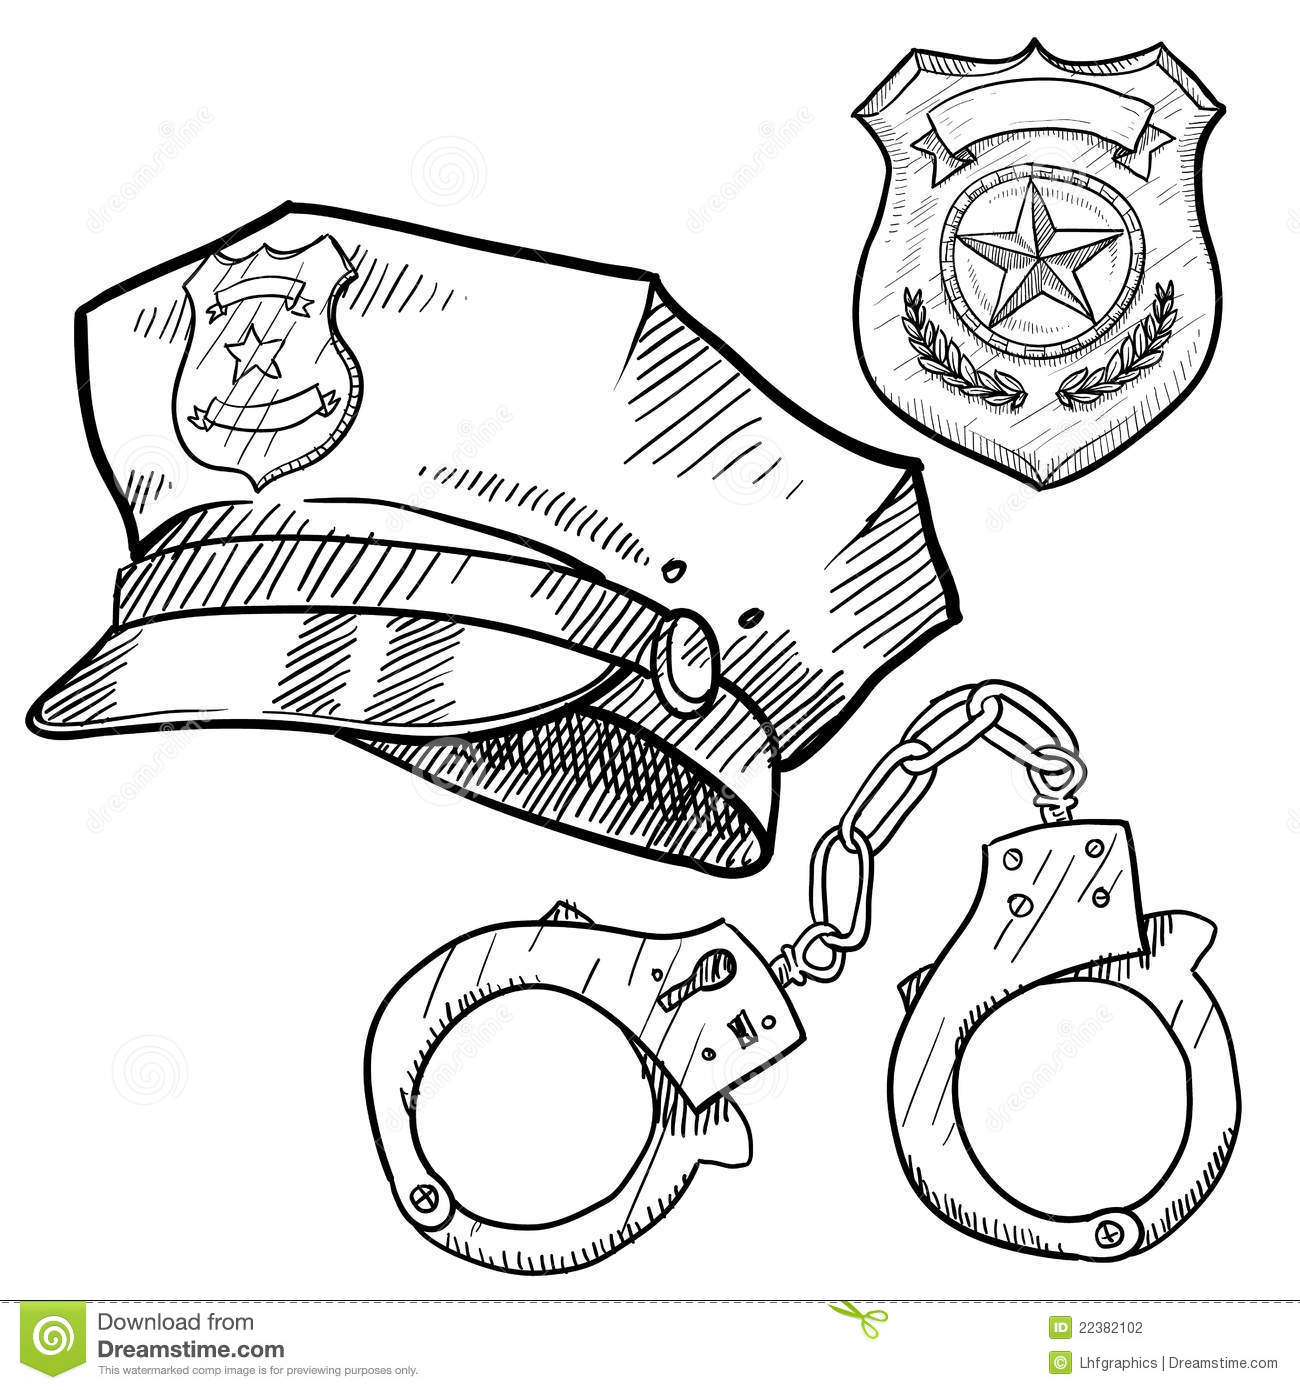 Police Objects Sketch Stock Vector Illustration Of Public